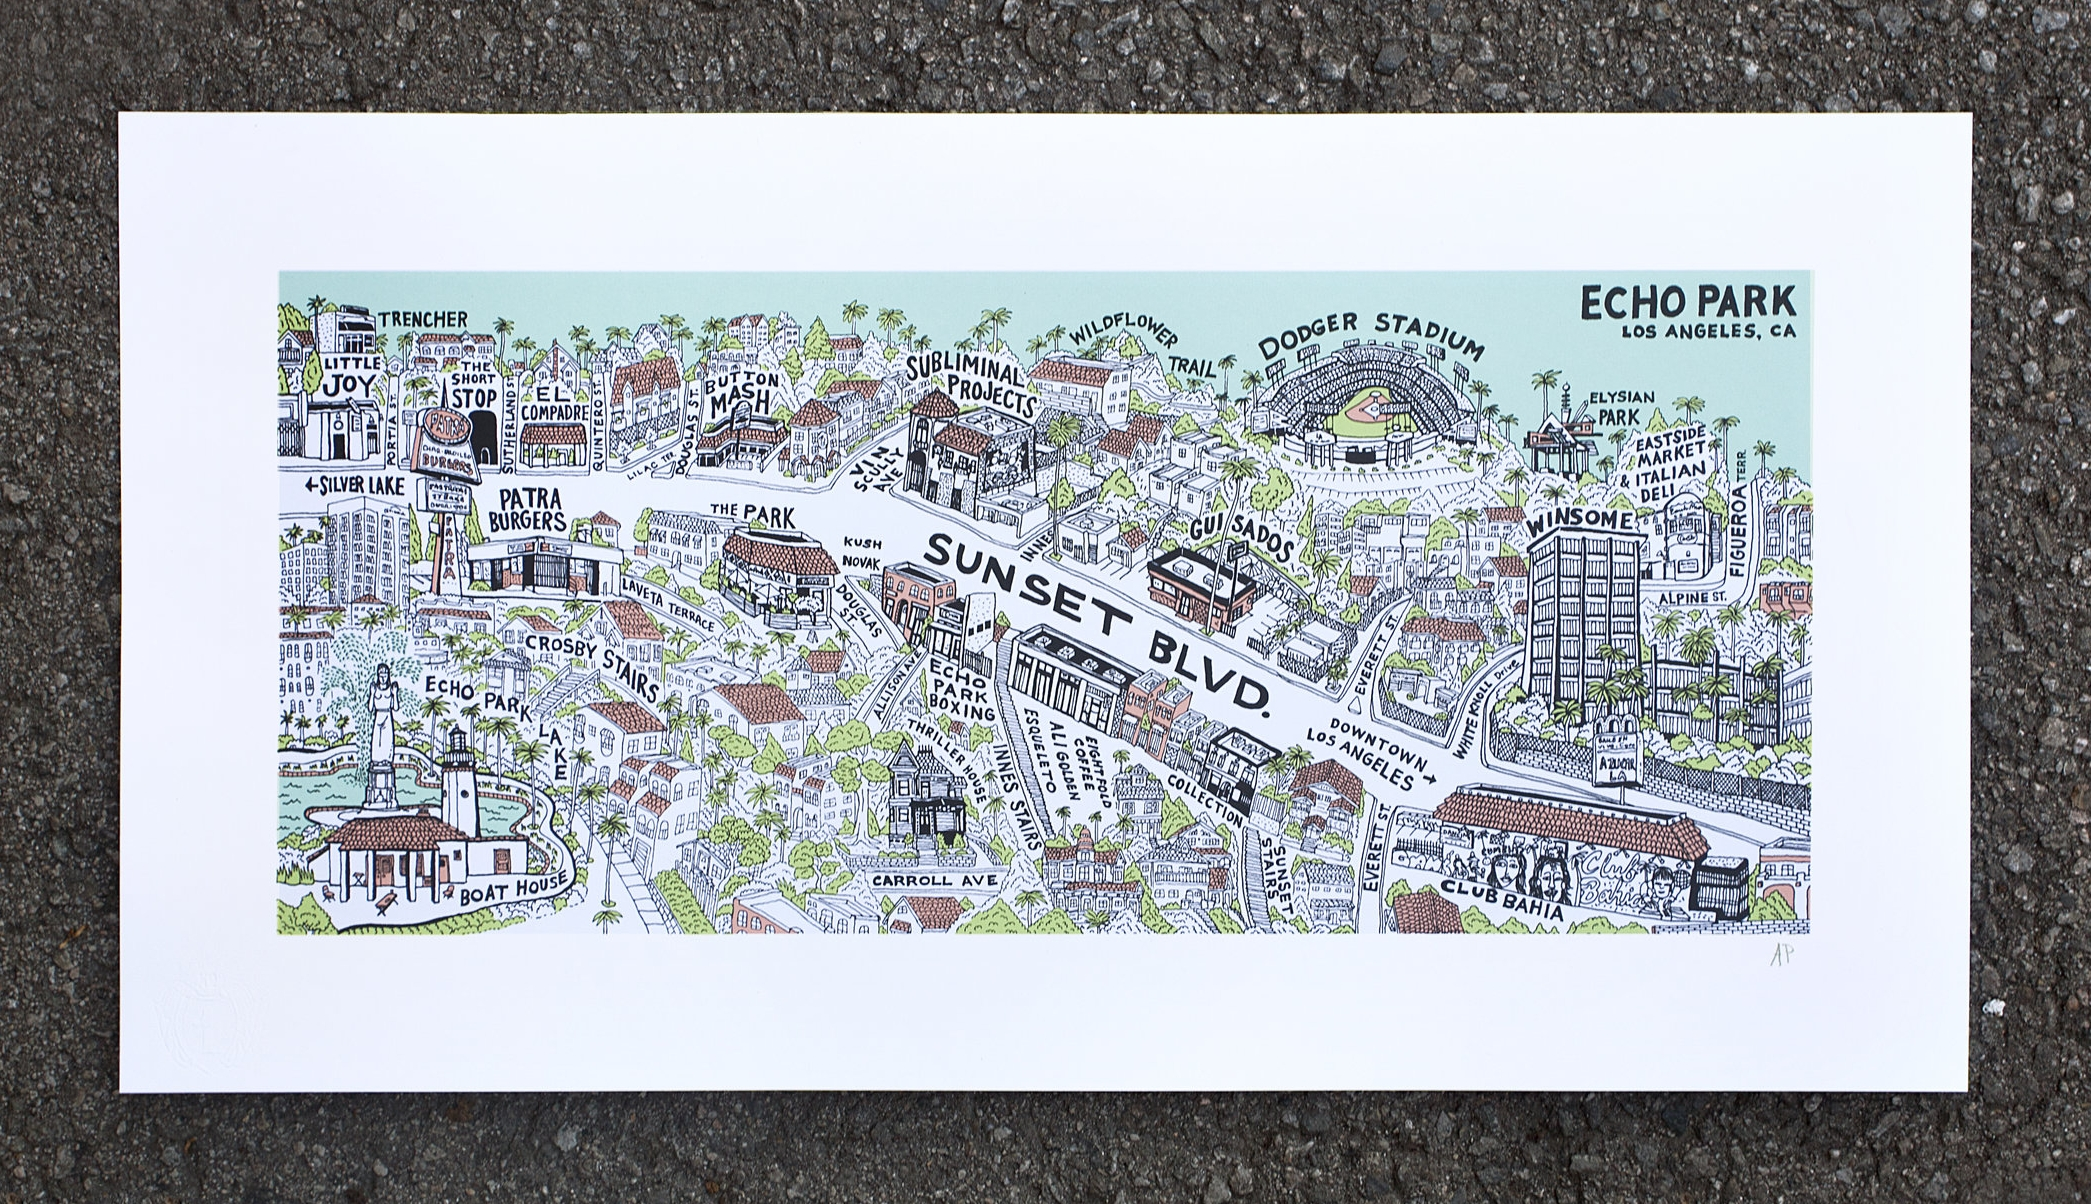 Echo Park Bridge Screenprint, 26 x 40 inches, Edition of 250 with SNO publishing chop in lower left corner.